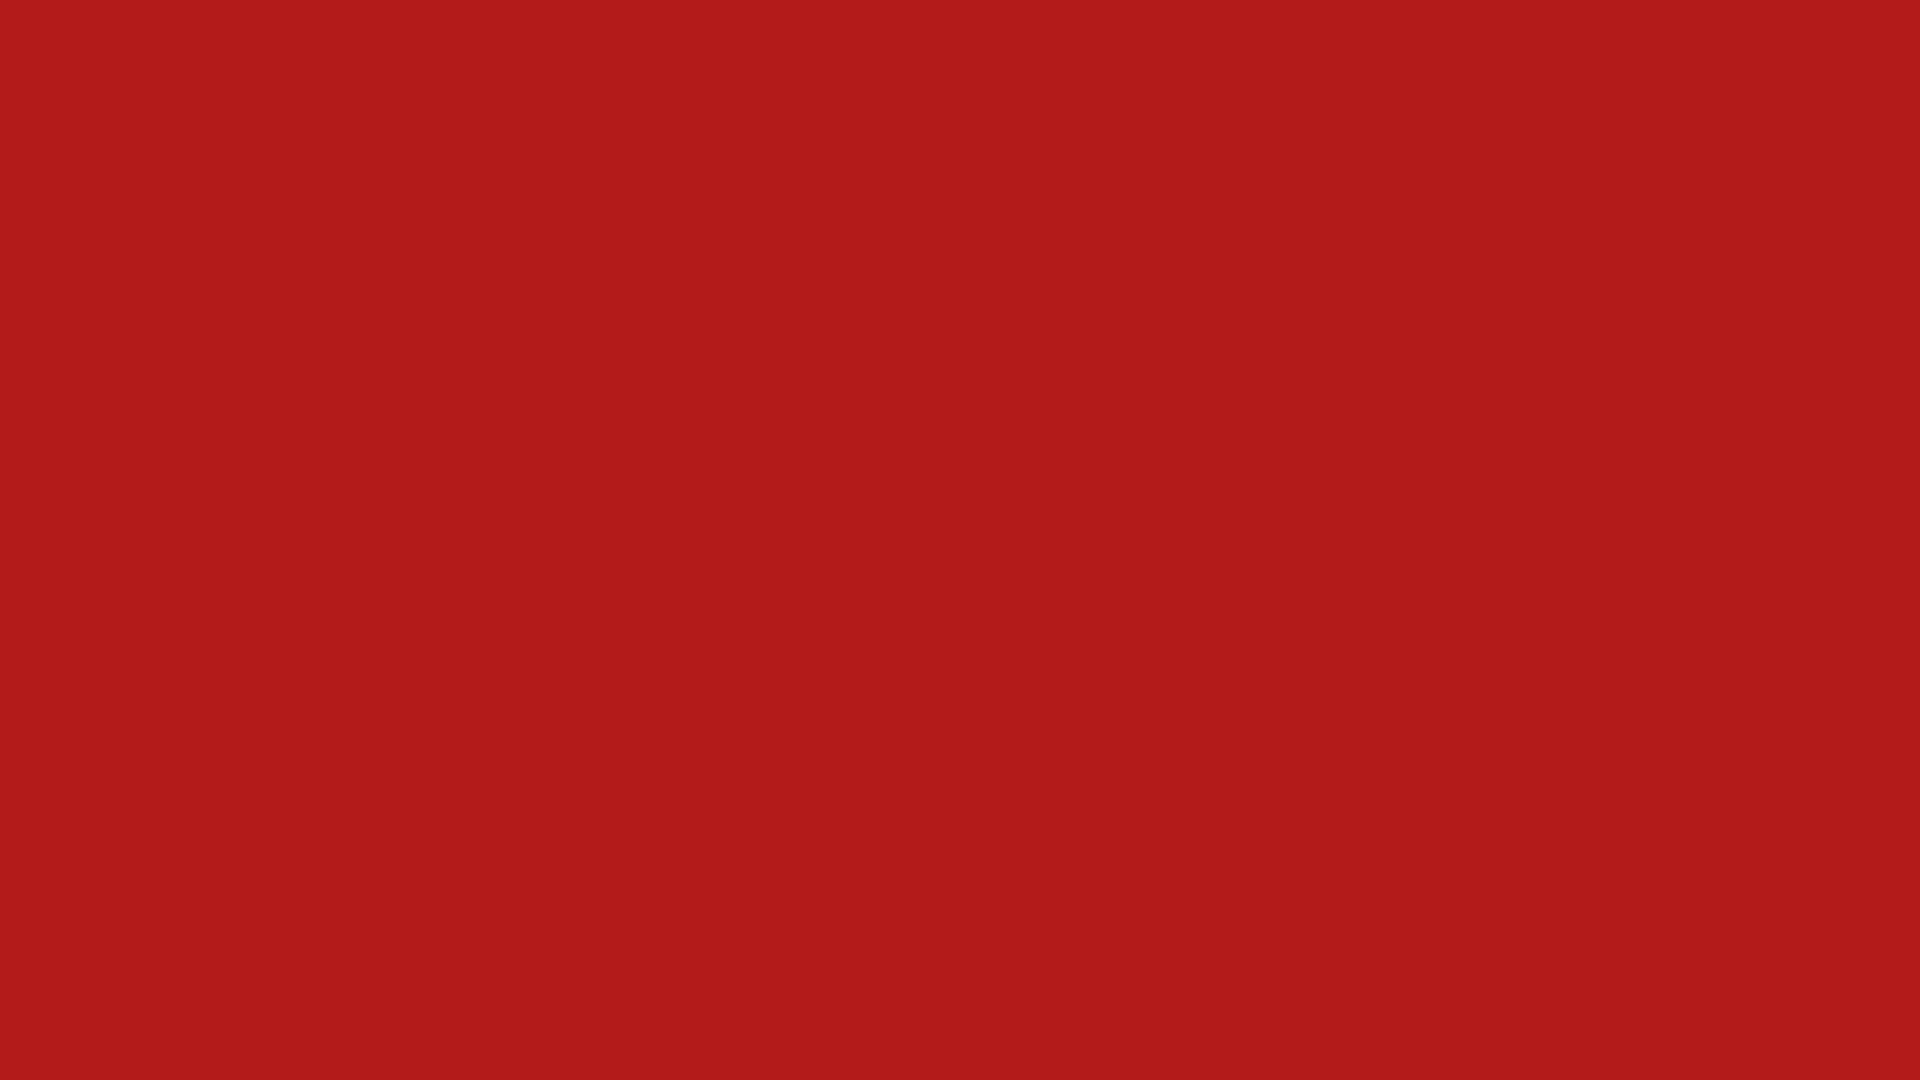 1920x1080 Carnelian Solid Color Background